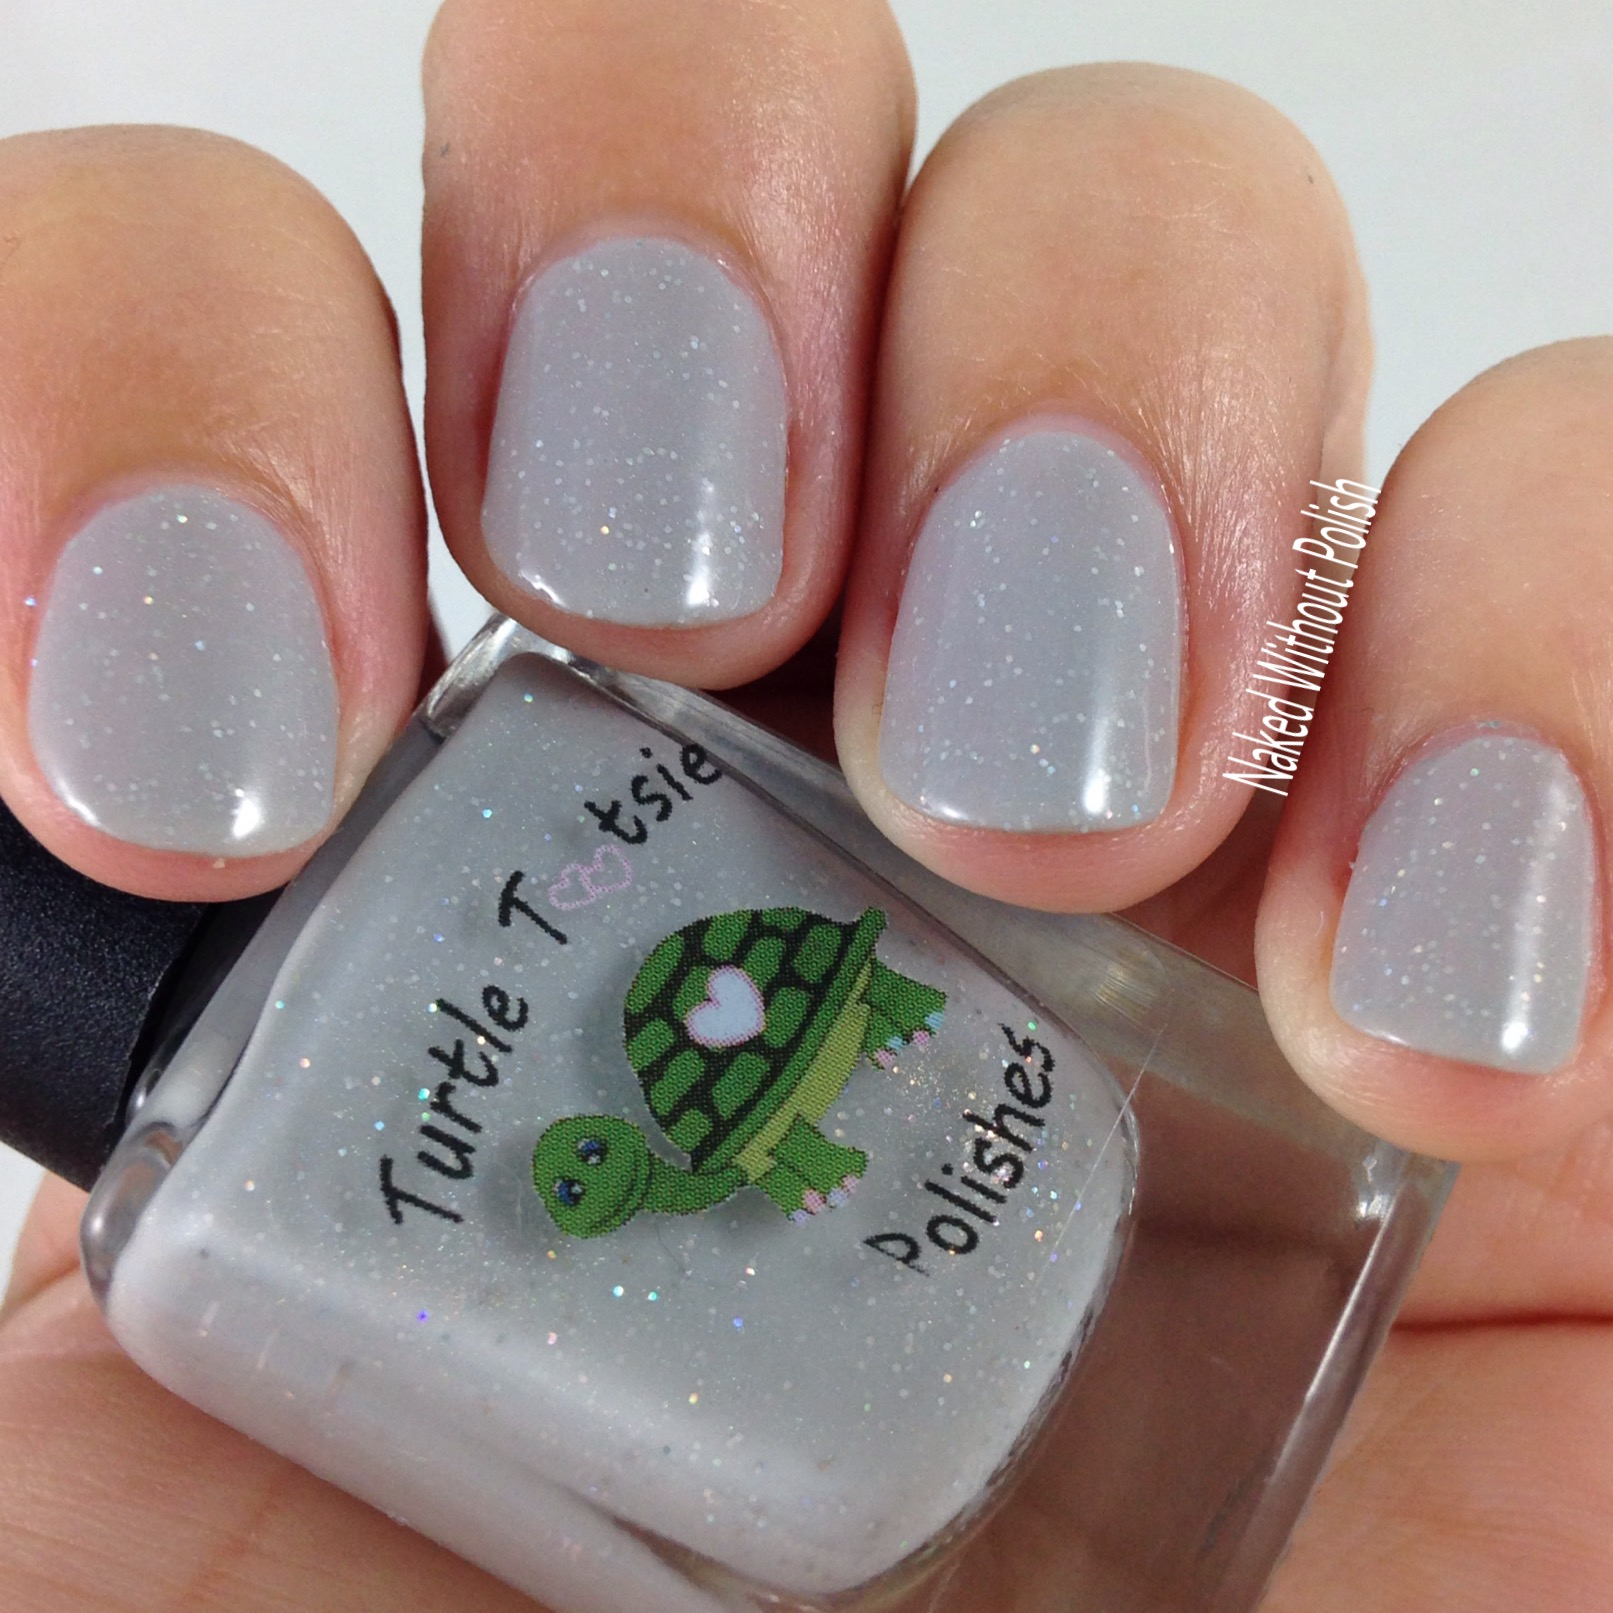 Turtle-Tootsie-Polishes-Grease-Lightning-6